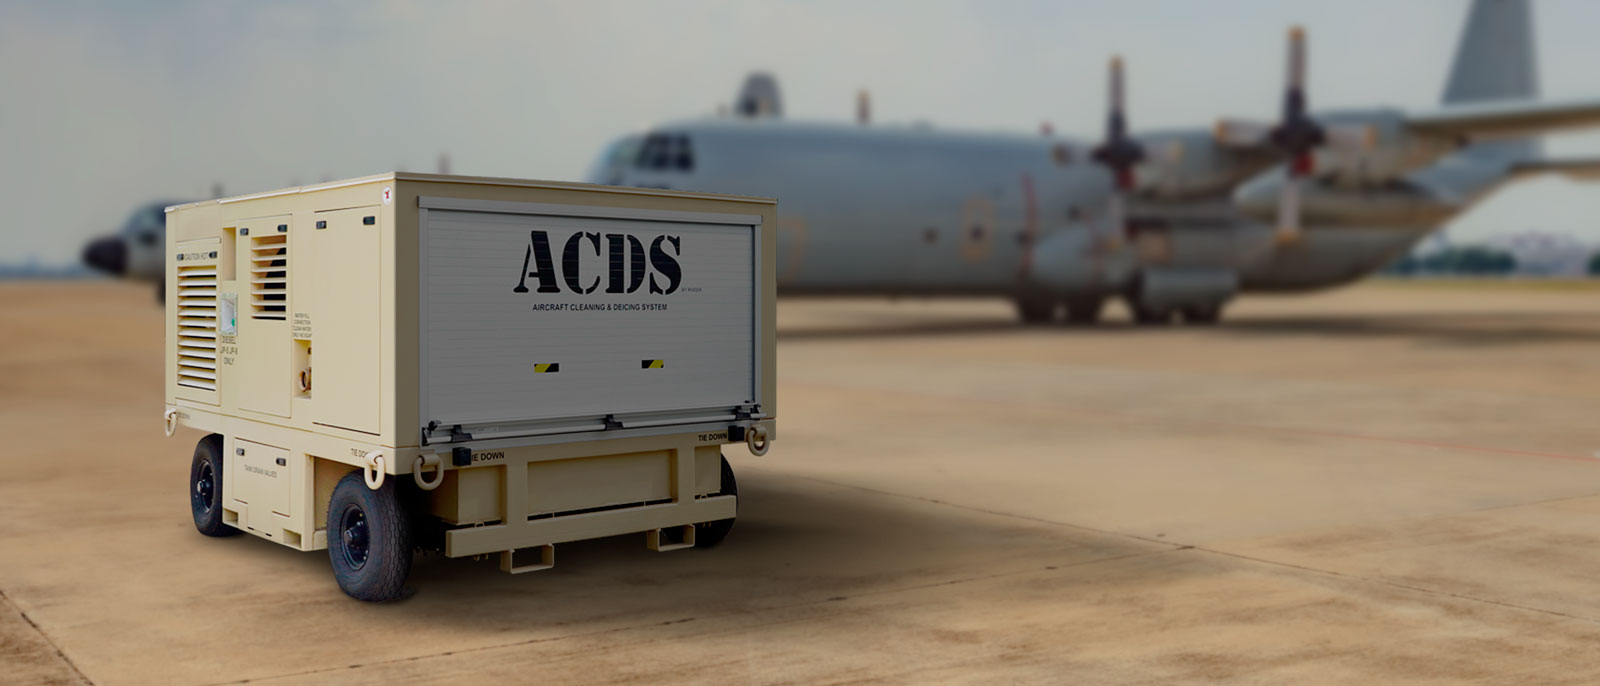 ACDS in front of large aircraft